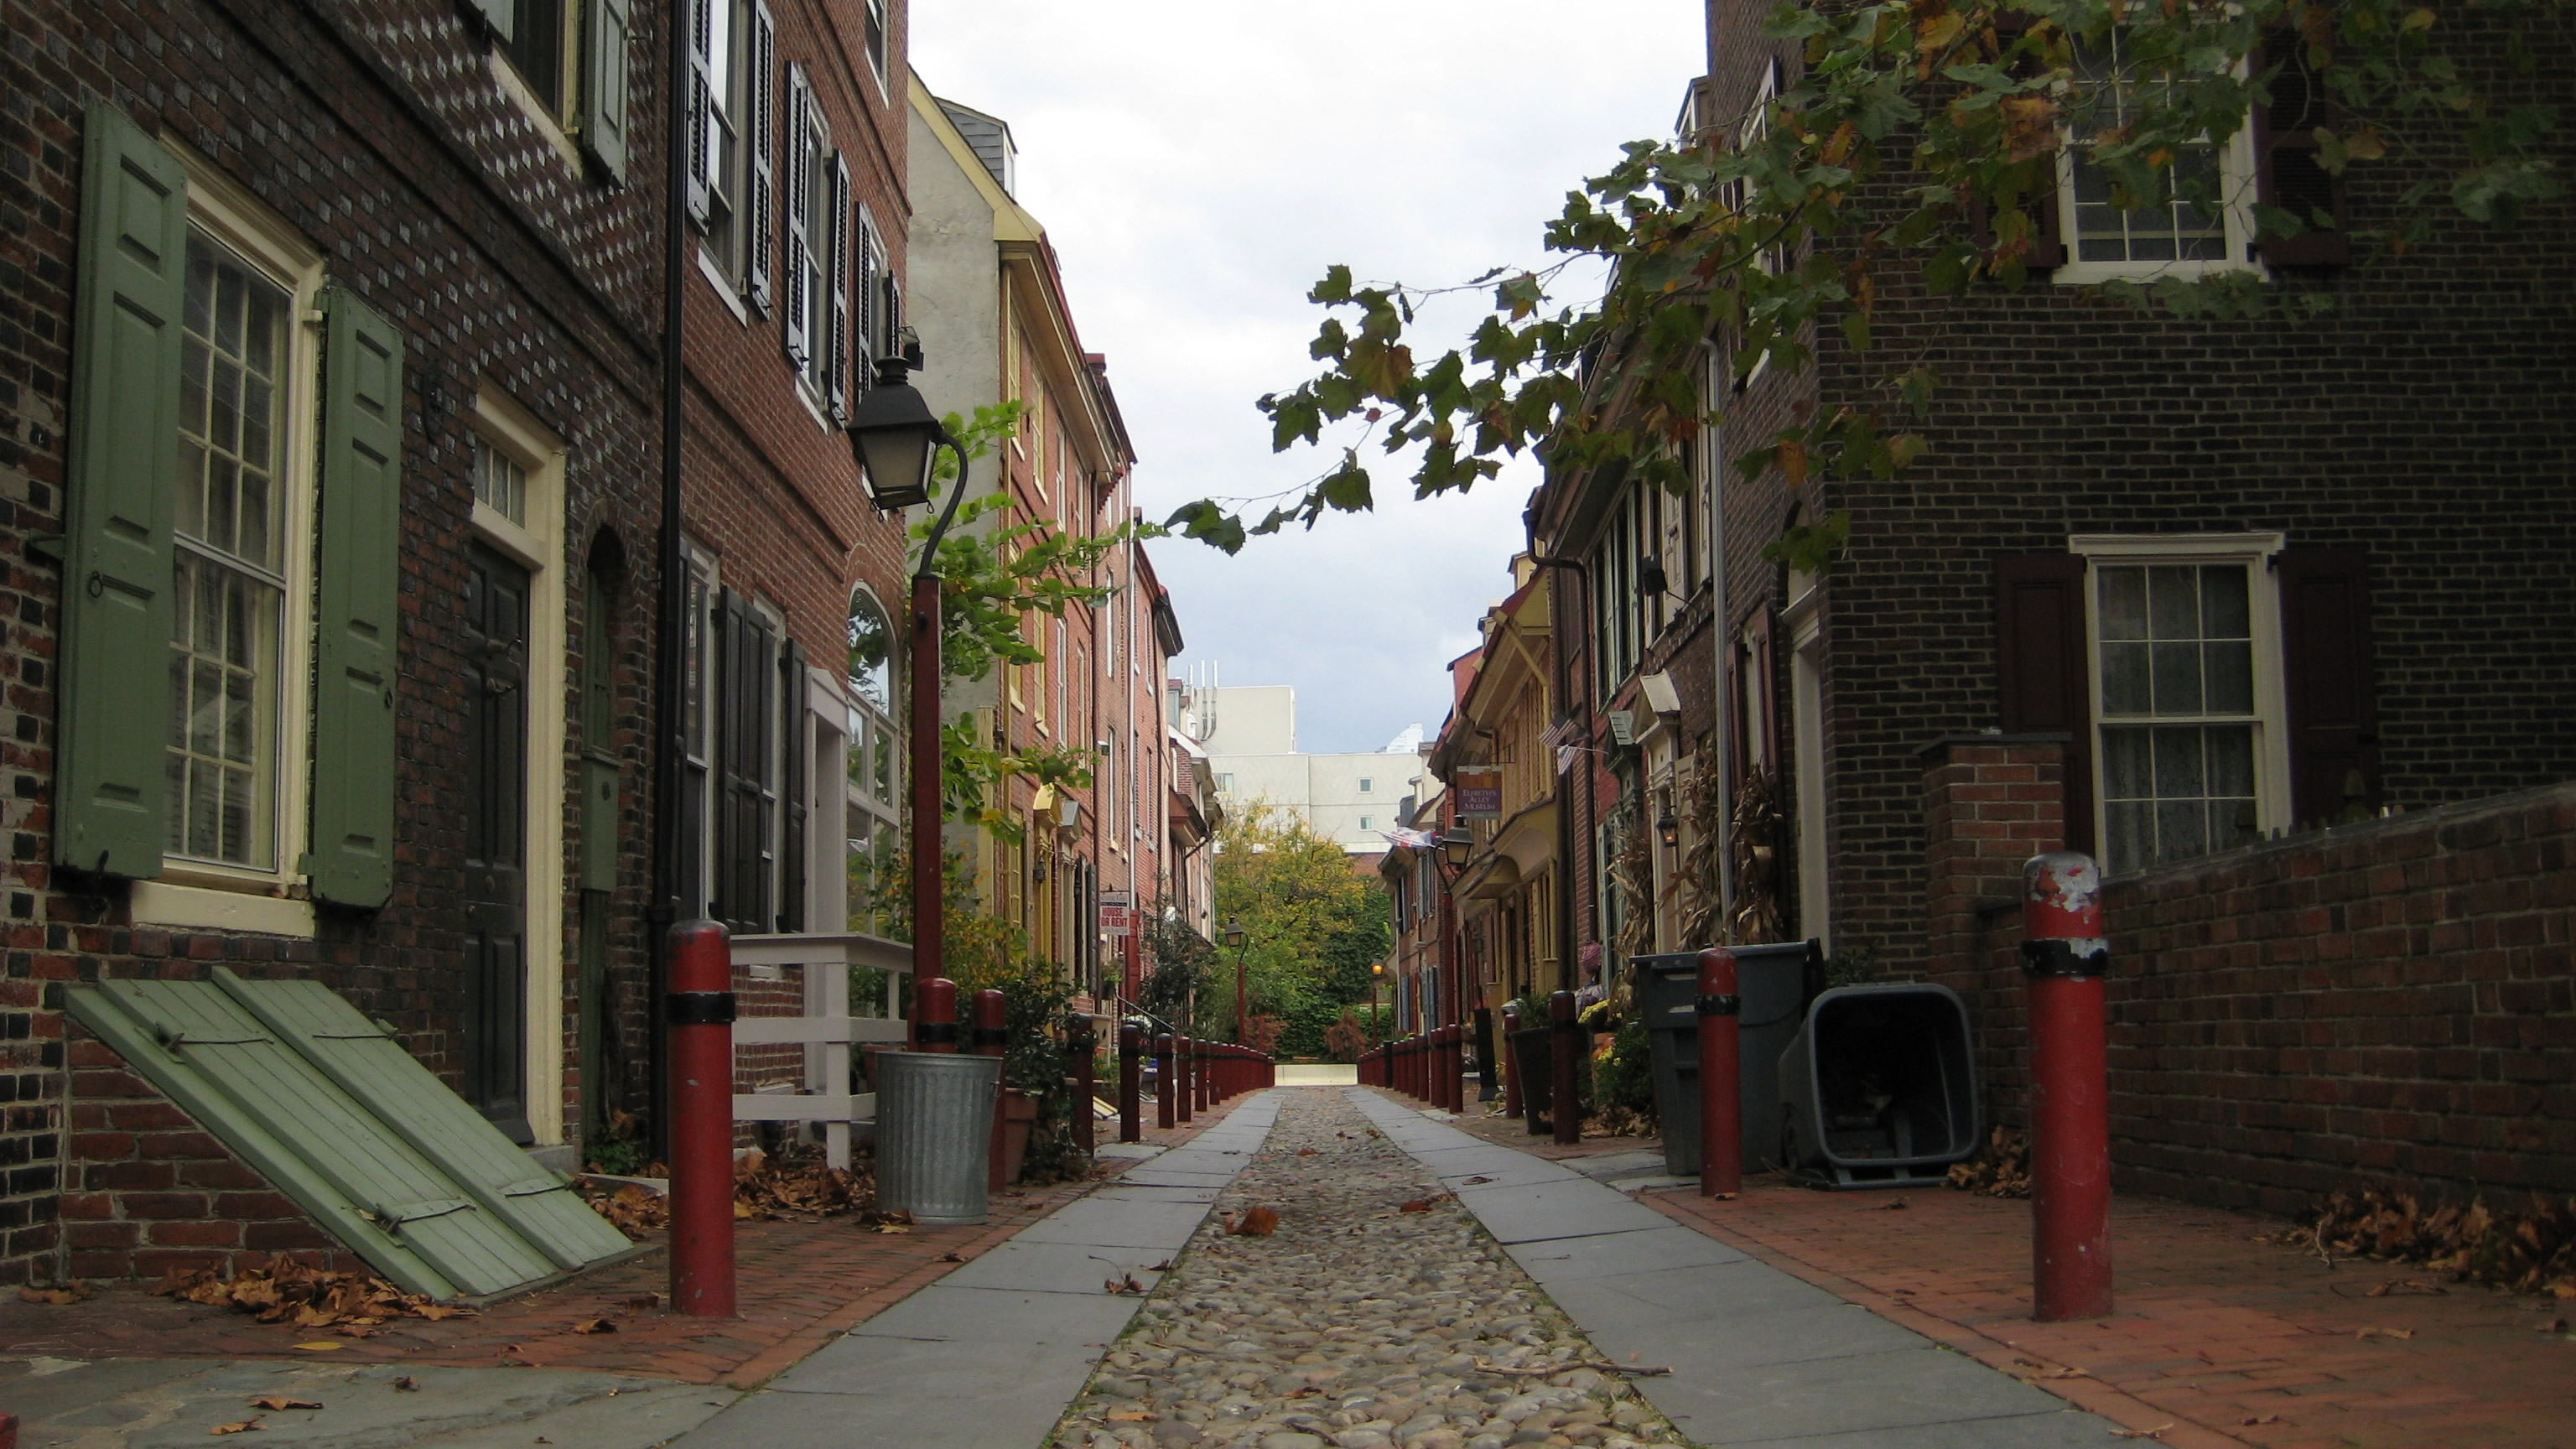 Panoramic view of Elfreth's Alley looking east